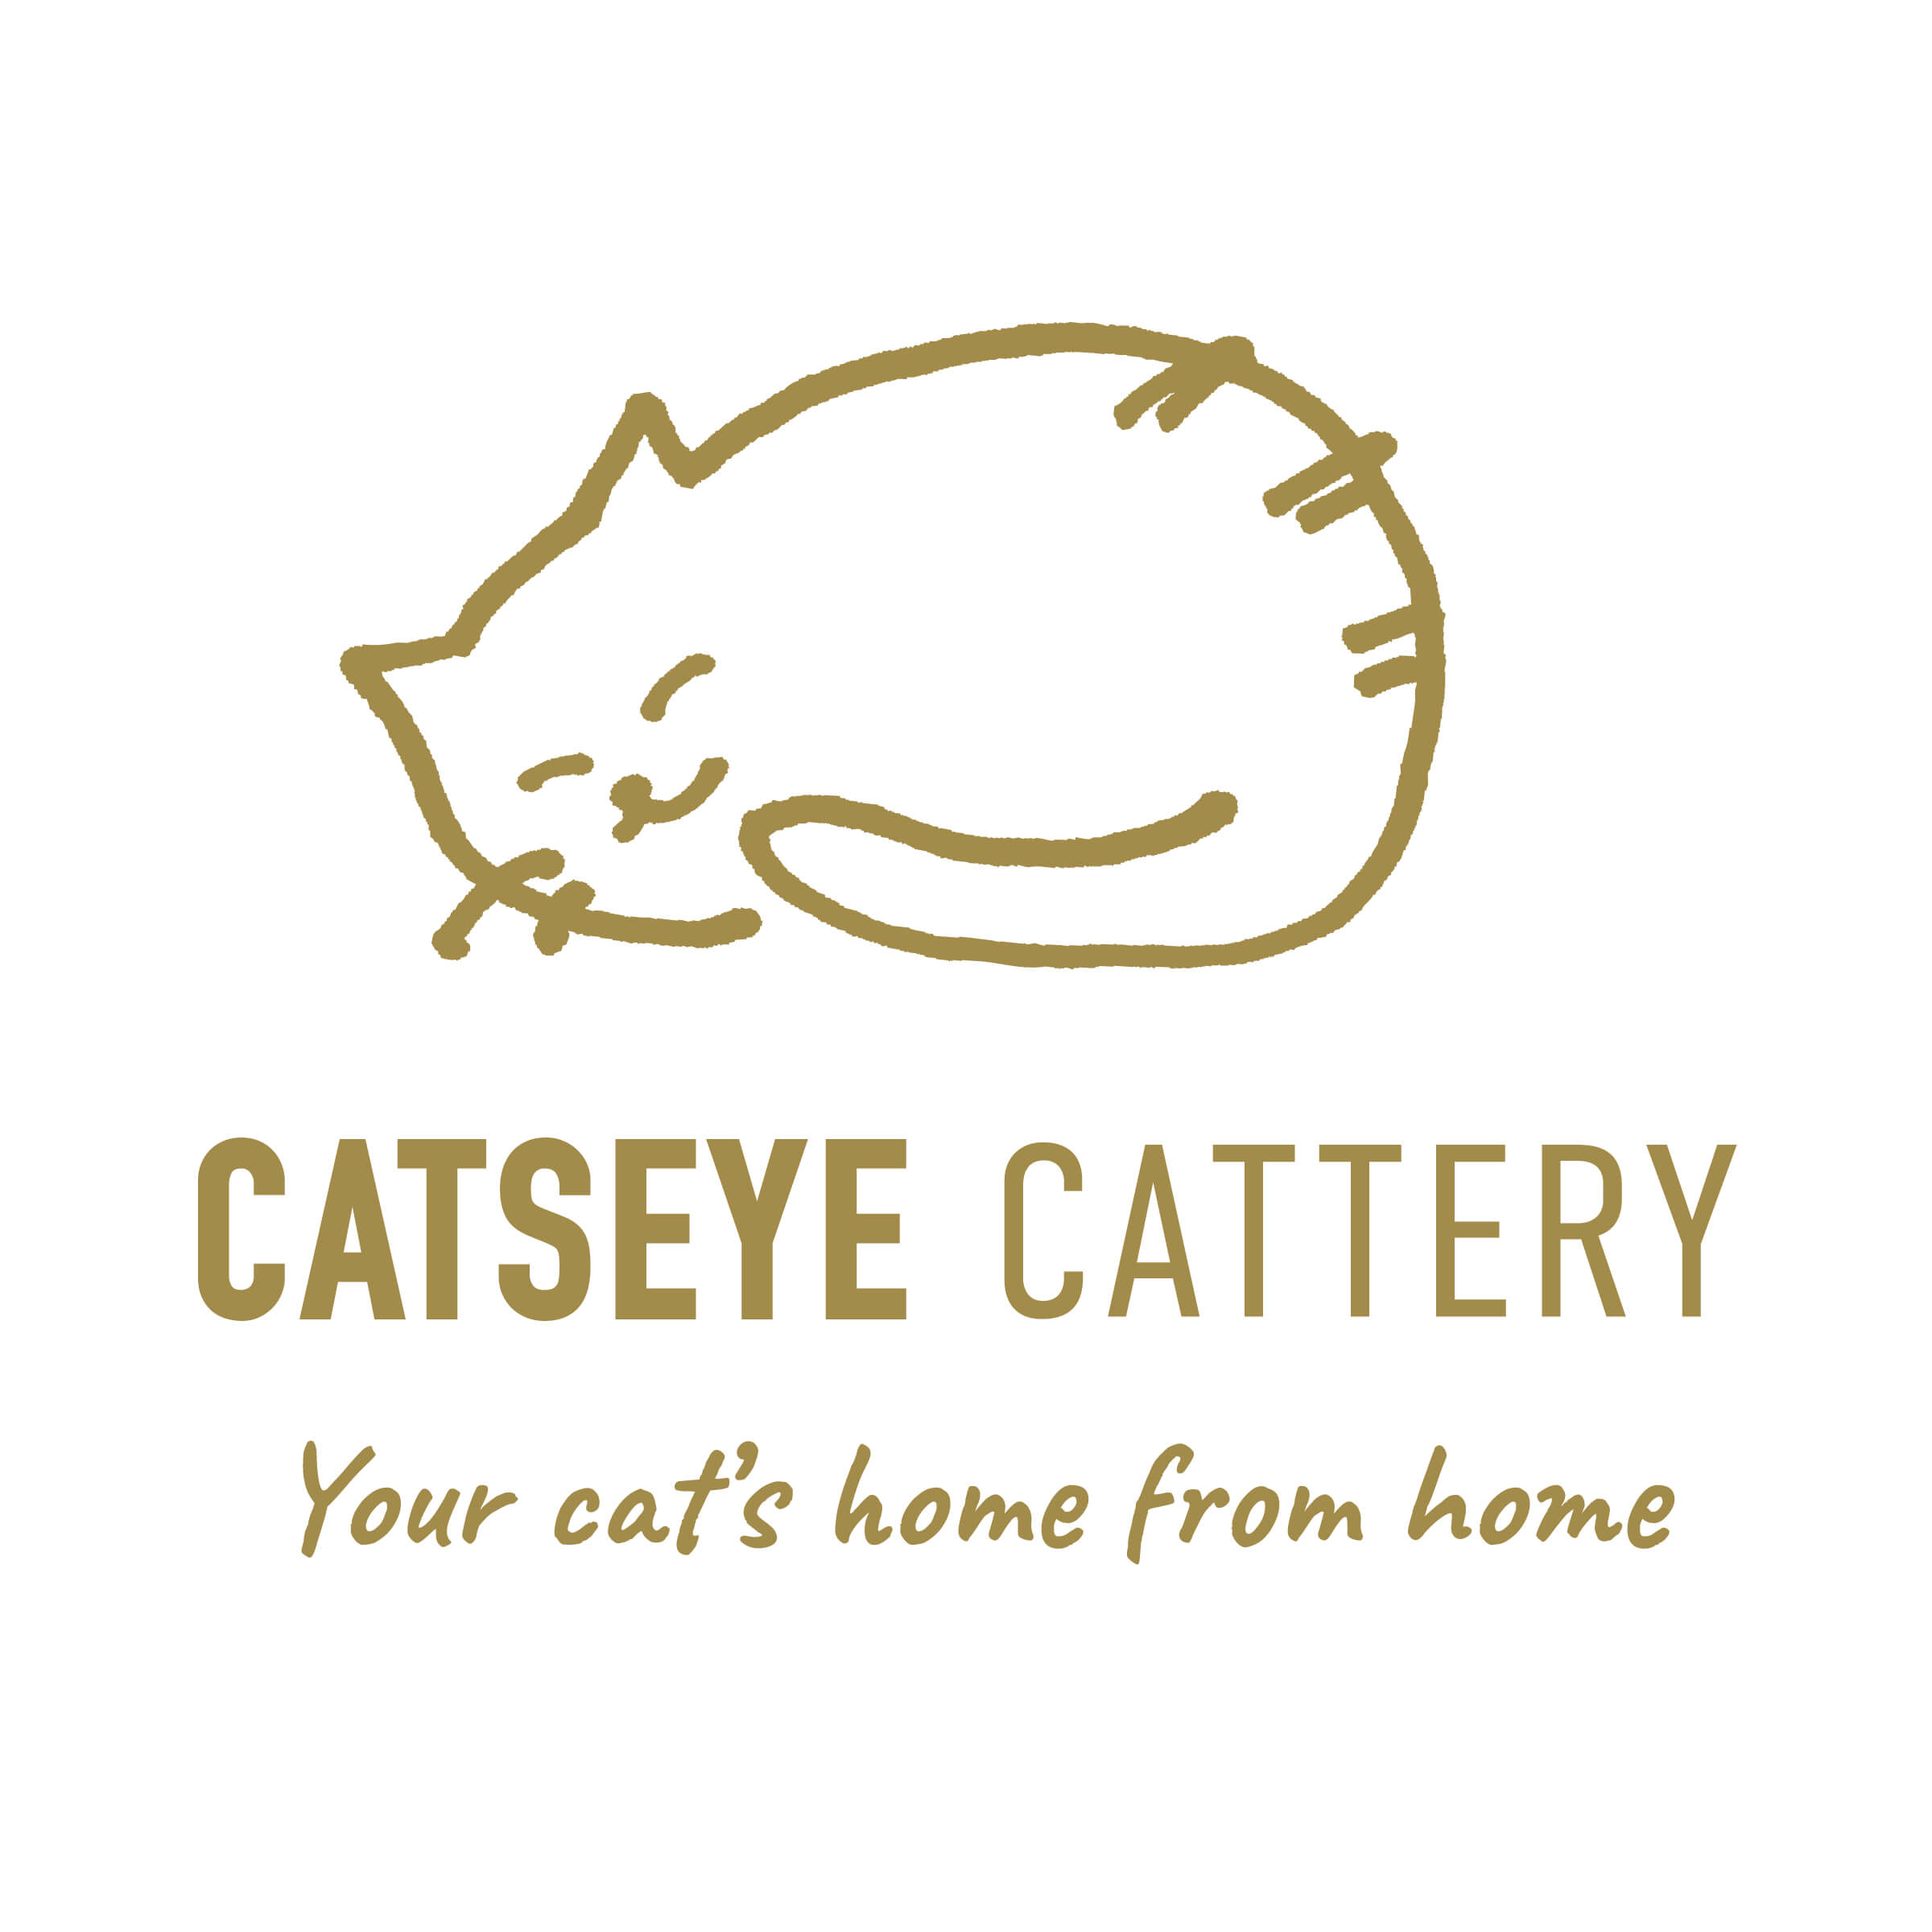 Catseye Cattery new logo